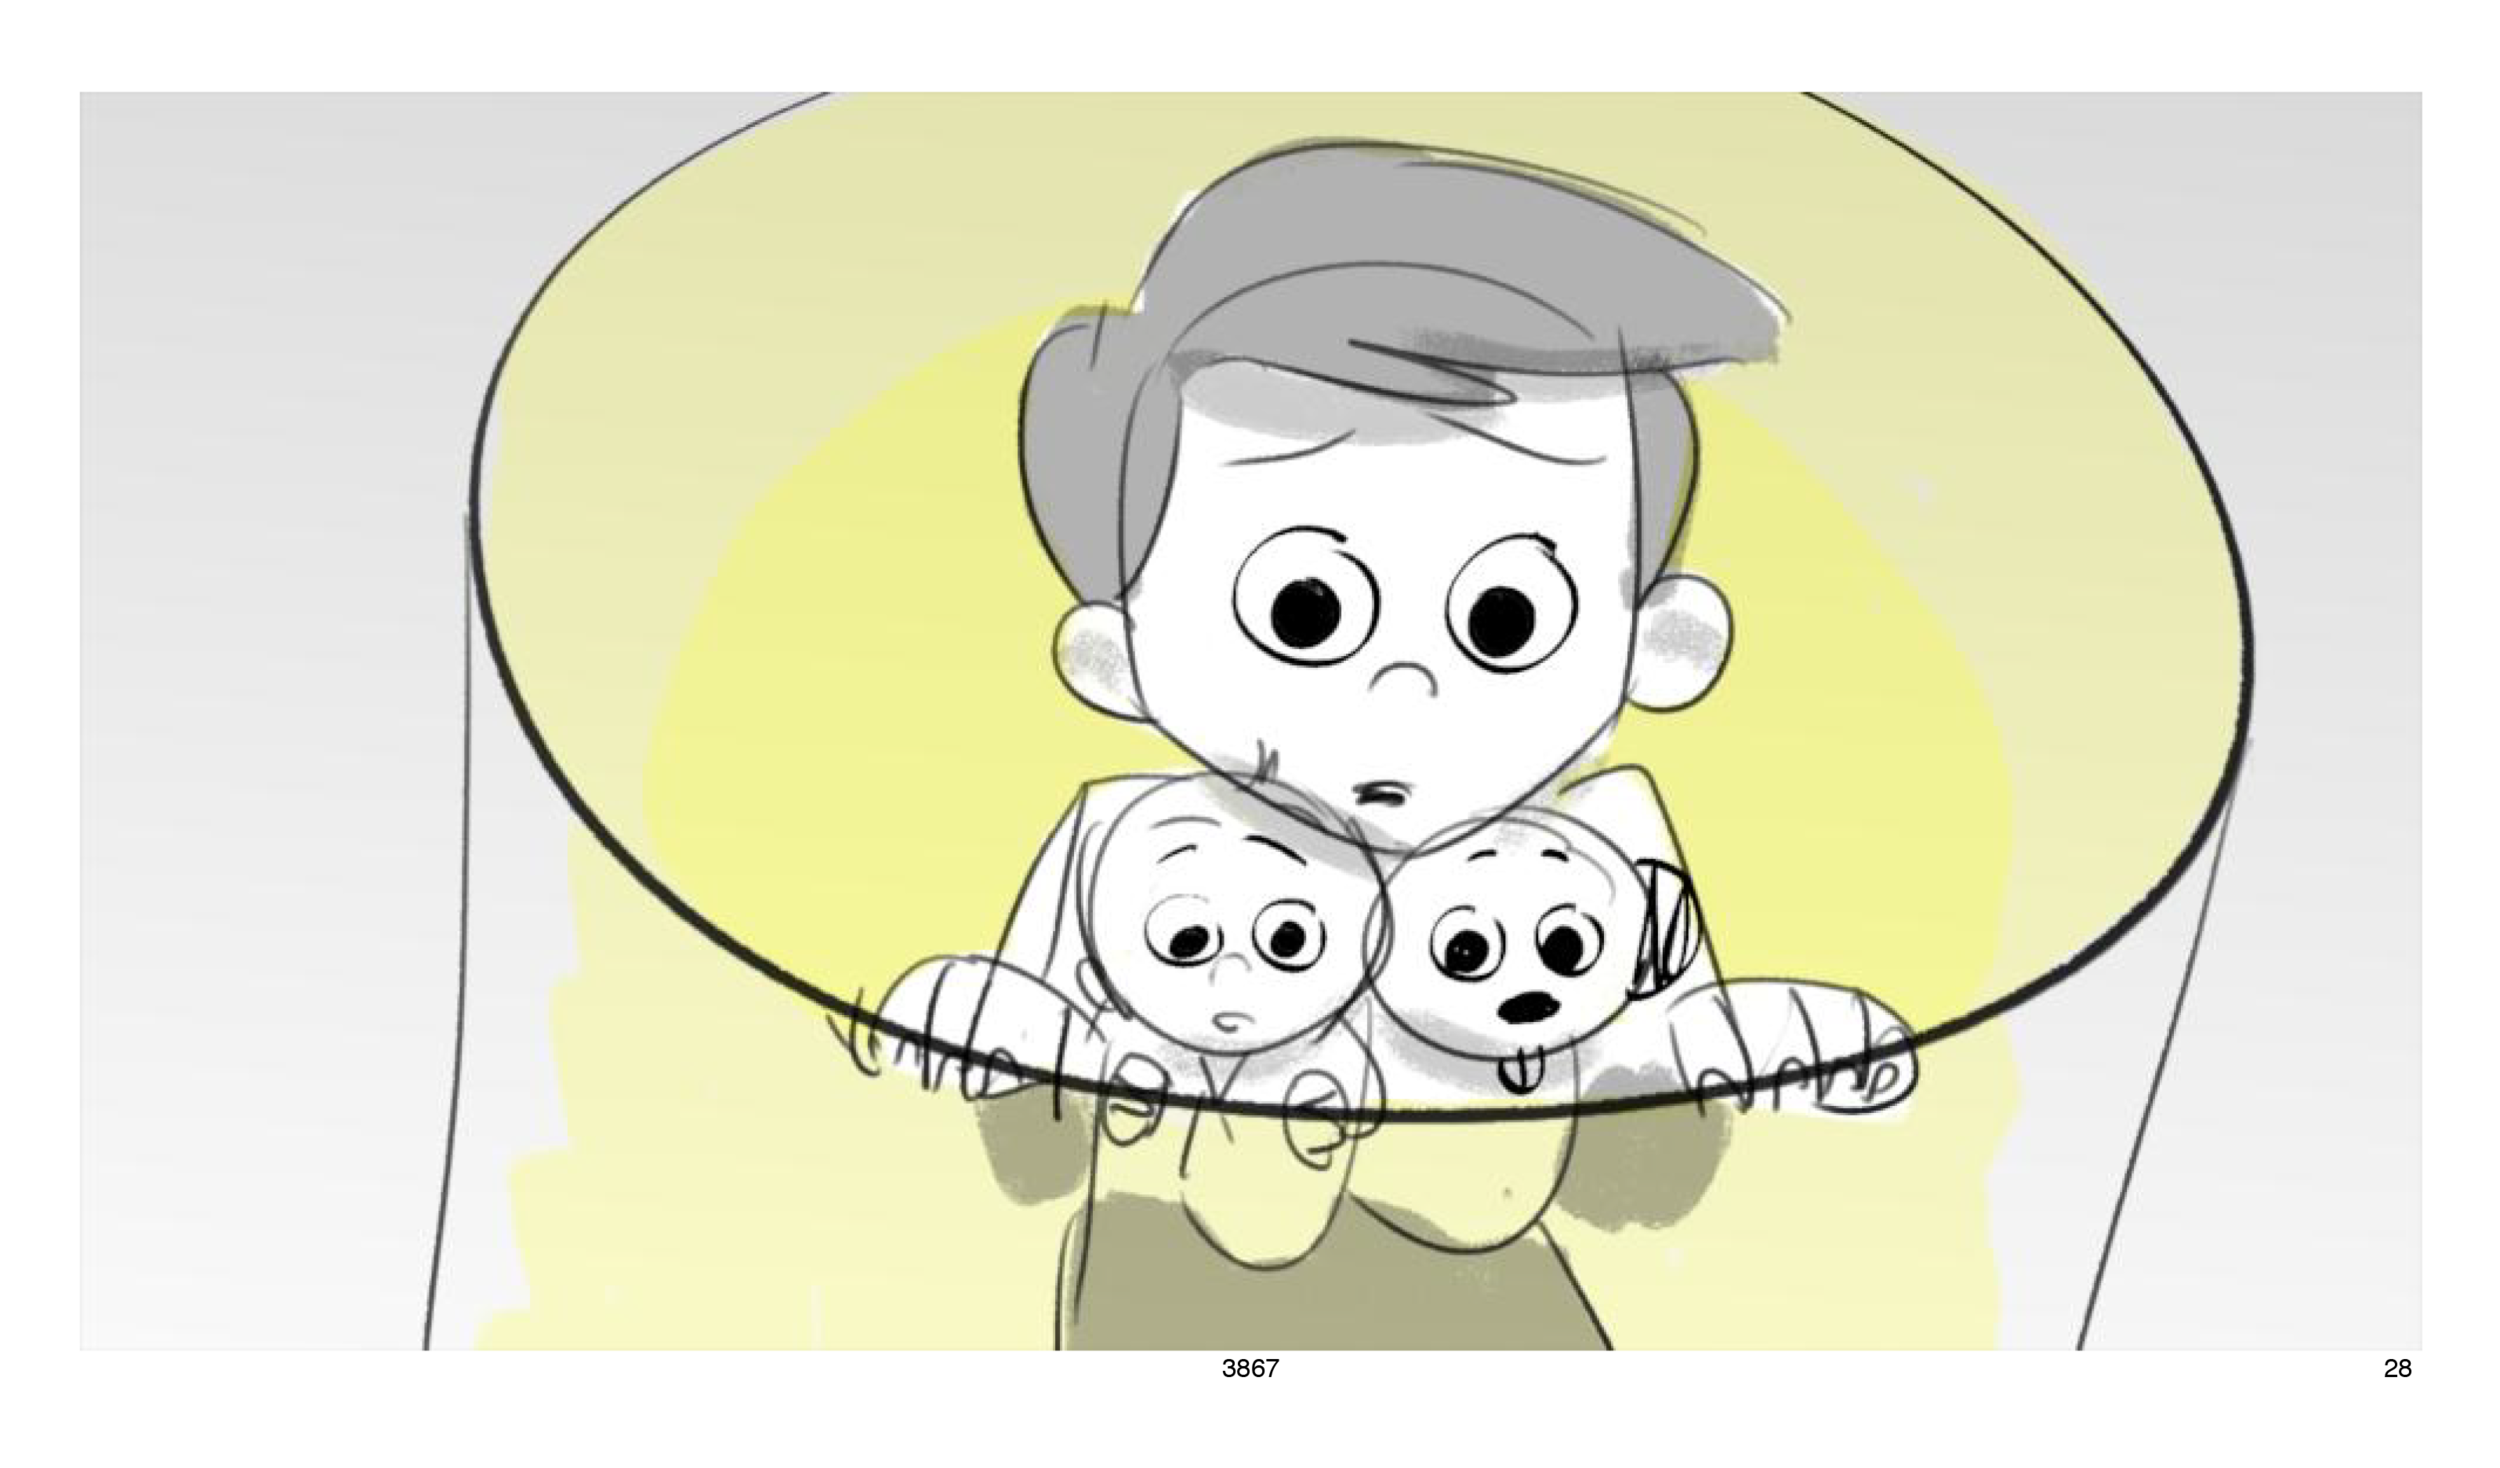 BossBaby_028.png